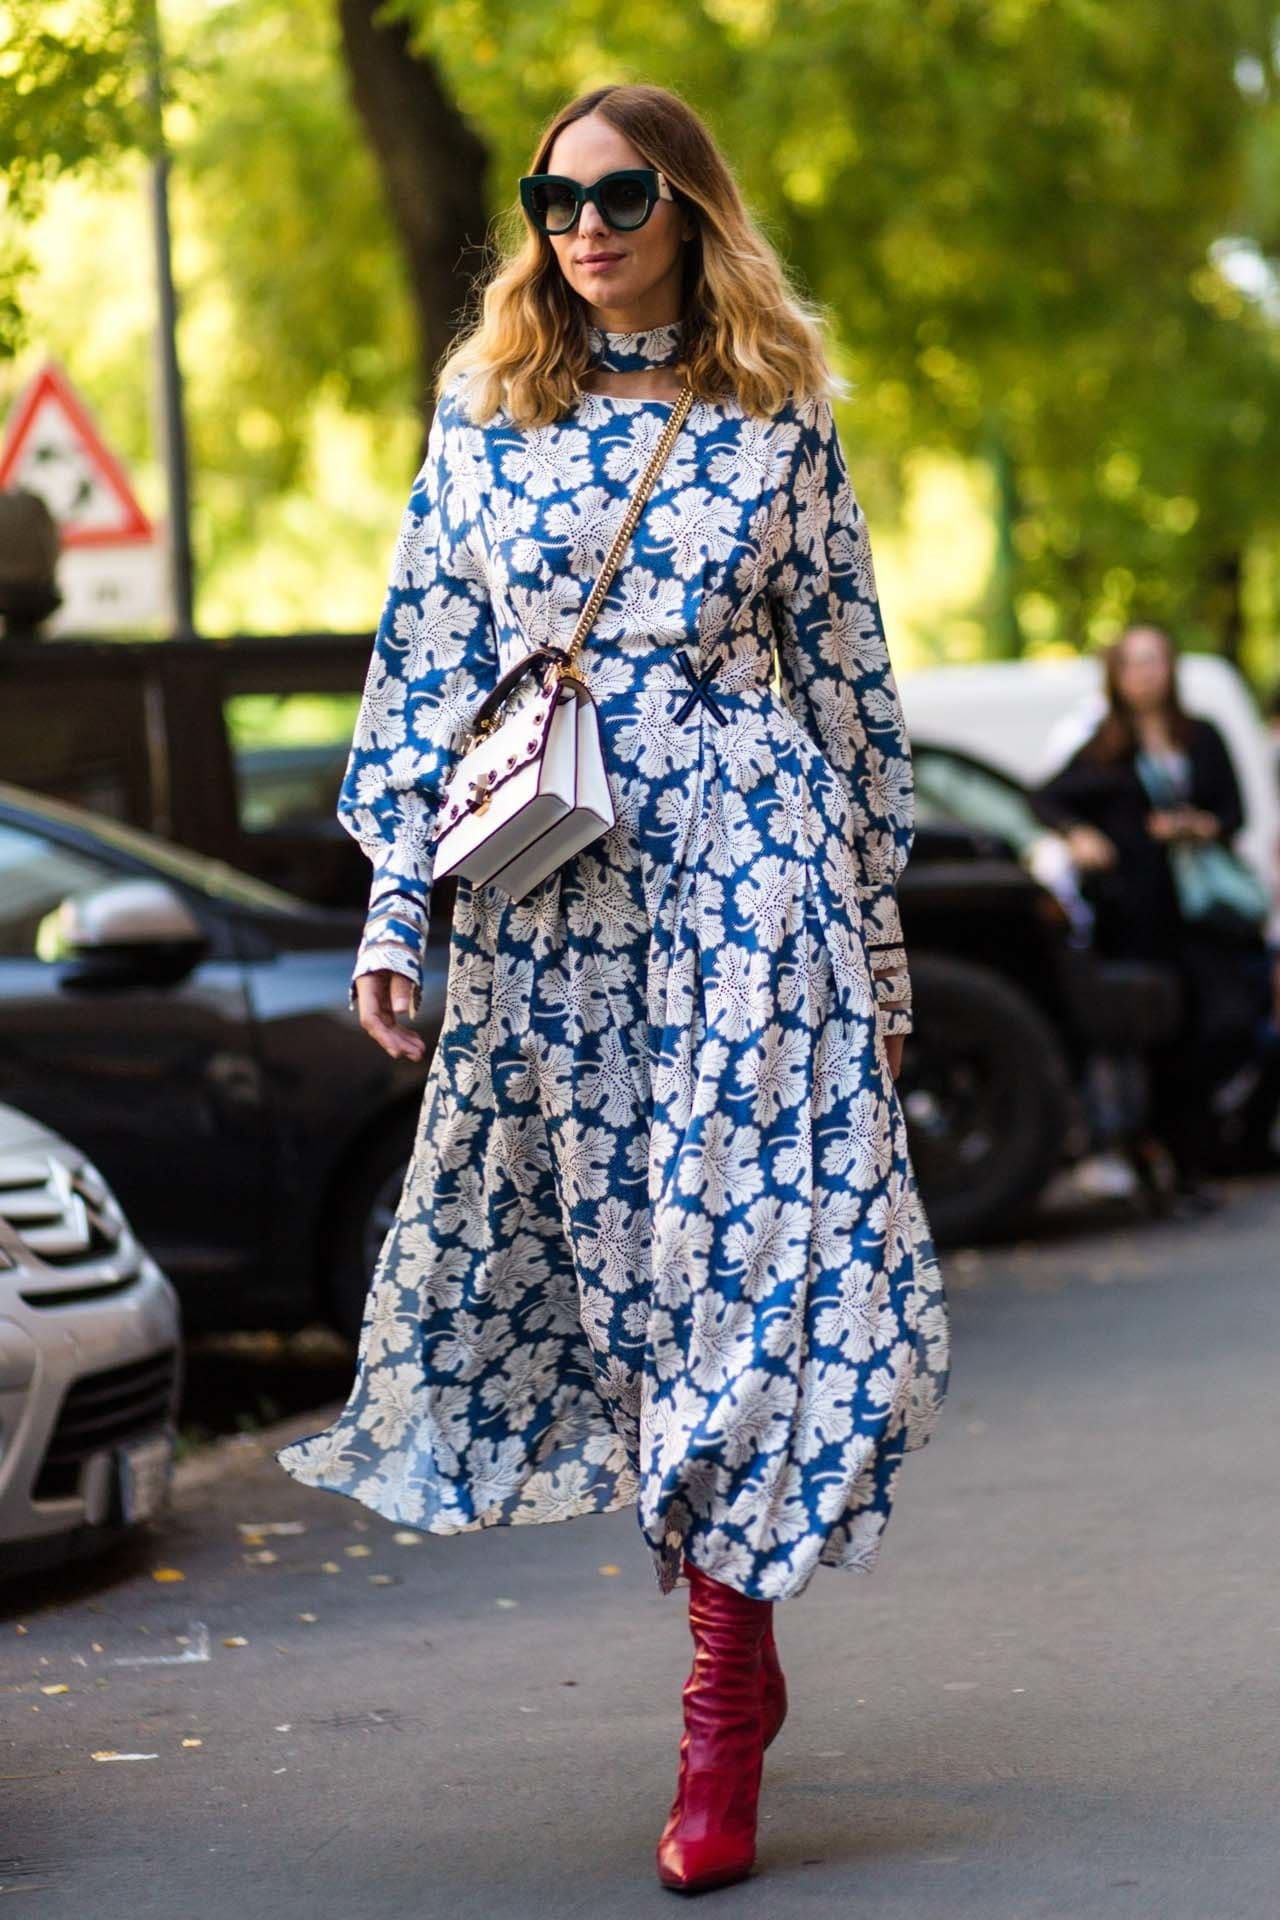 Nine uber-chic stylists to follow for street style in 2018